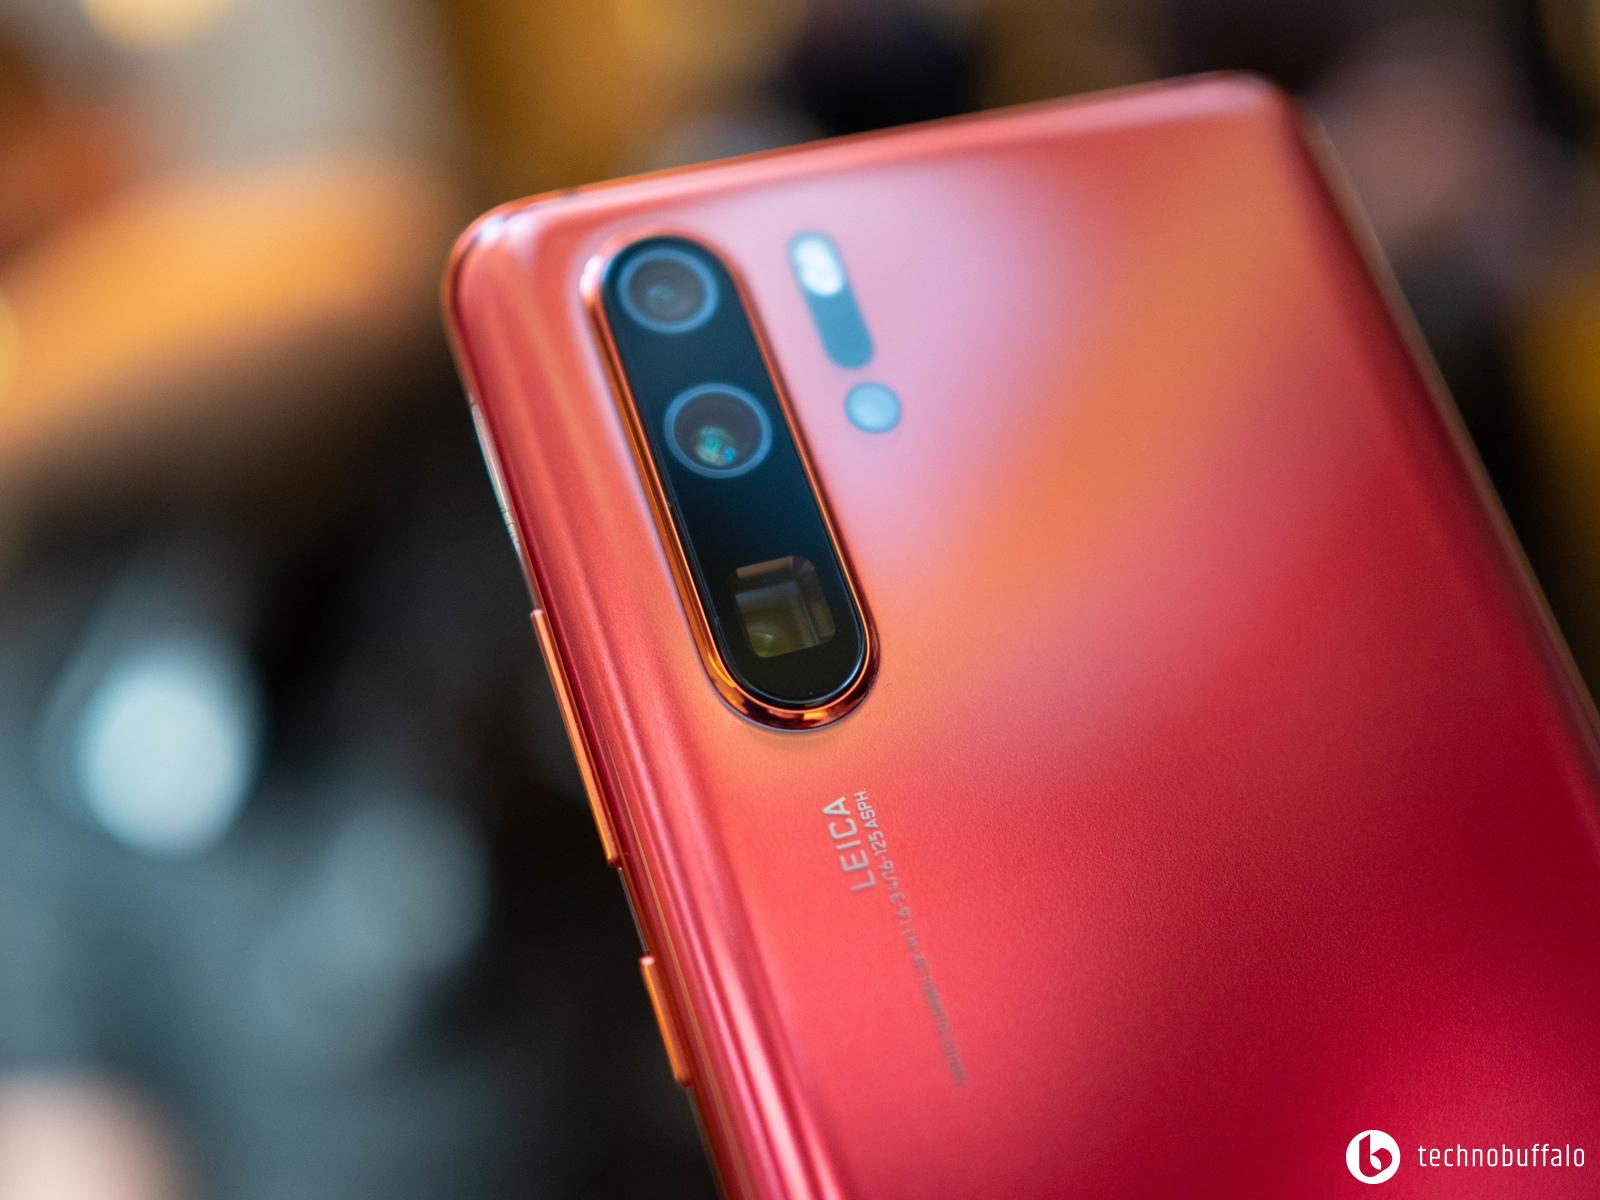 Huawei Mate 30 might end up launching New Android compatible operating system